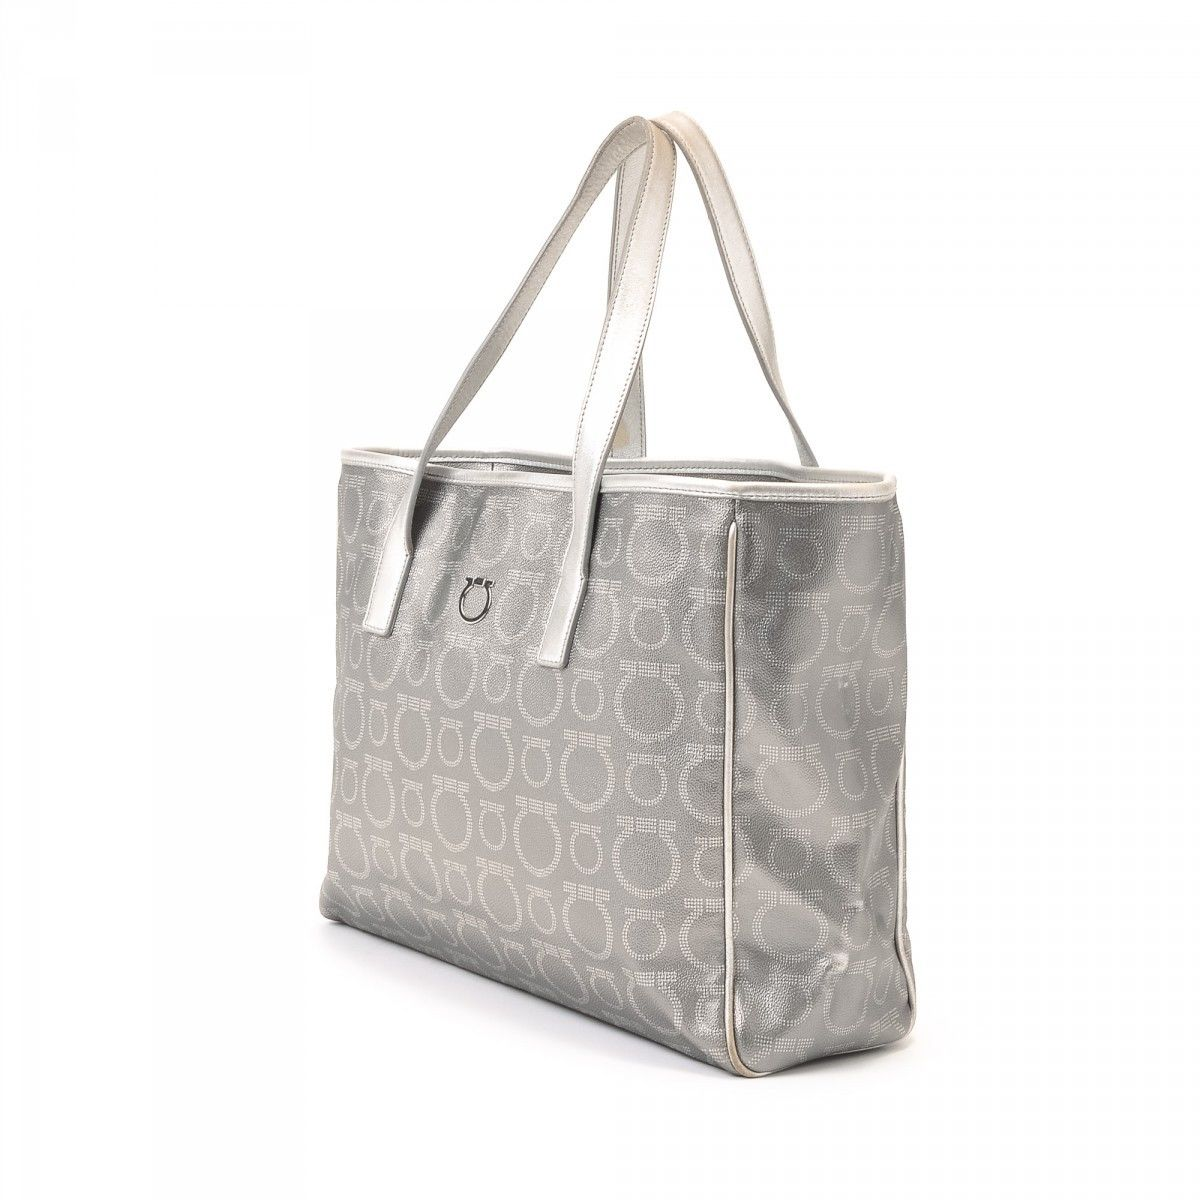 8fef2b7e249 Ferragamo Tote. The authenticity of this vintage Ferragamo tote is  guaranteed by LXRandCo. This practical large handbag in silver tone is made  in gancini ...